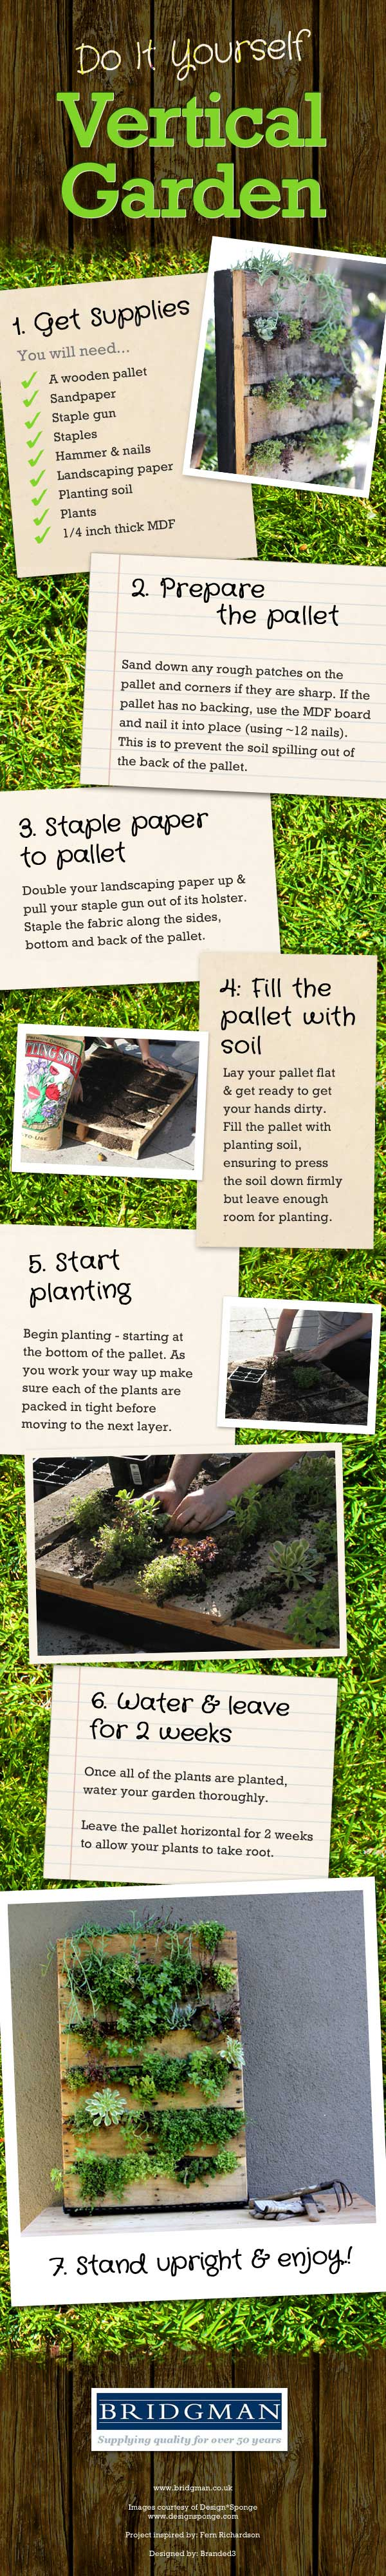 Do it Yourself Vertical Garden - goes through whole process from supplies needed to putting in the plants, with images of each stage. Text only version is below.